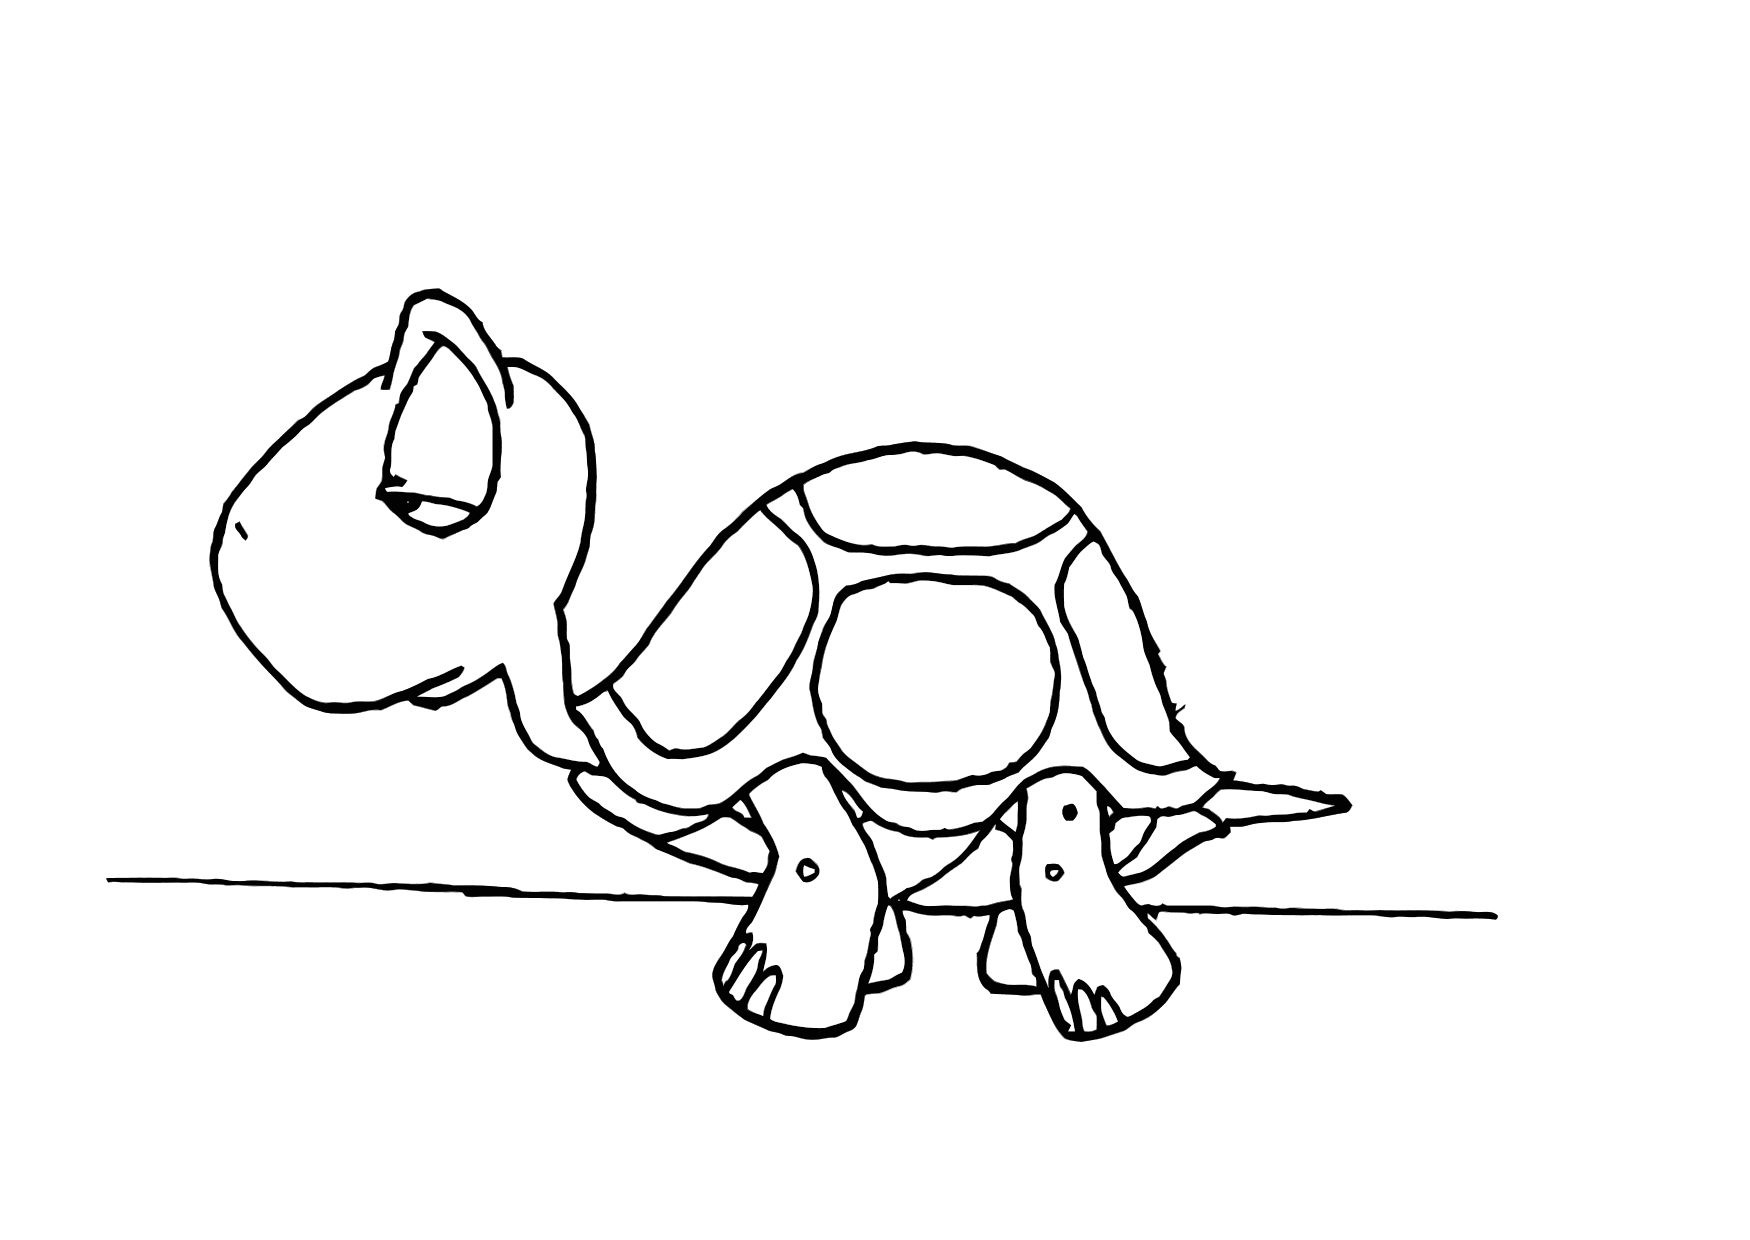 Turtle coloring #6, Download drawings